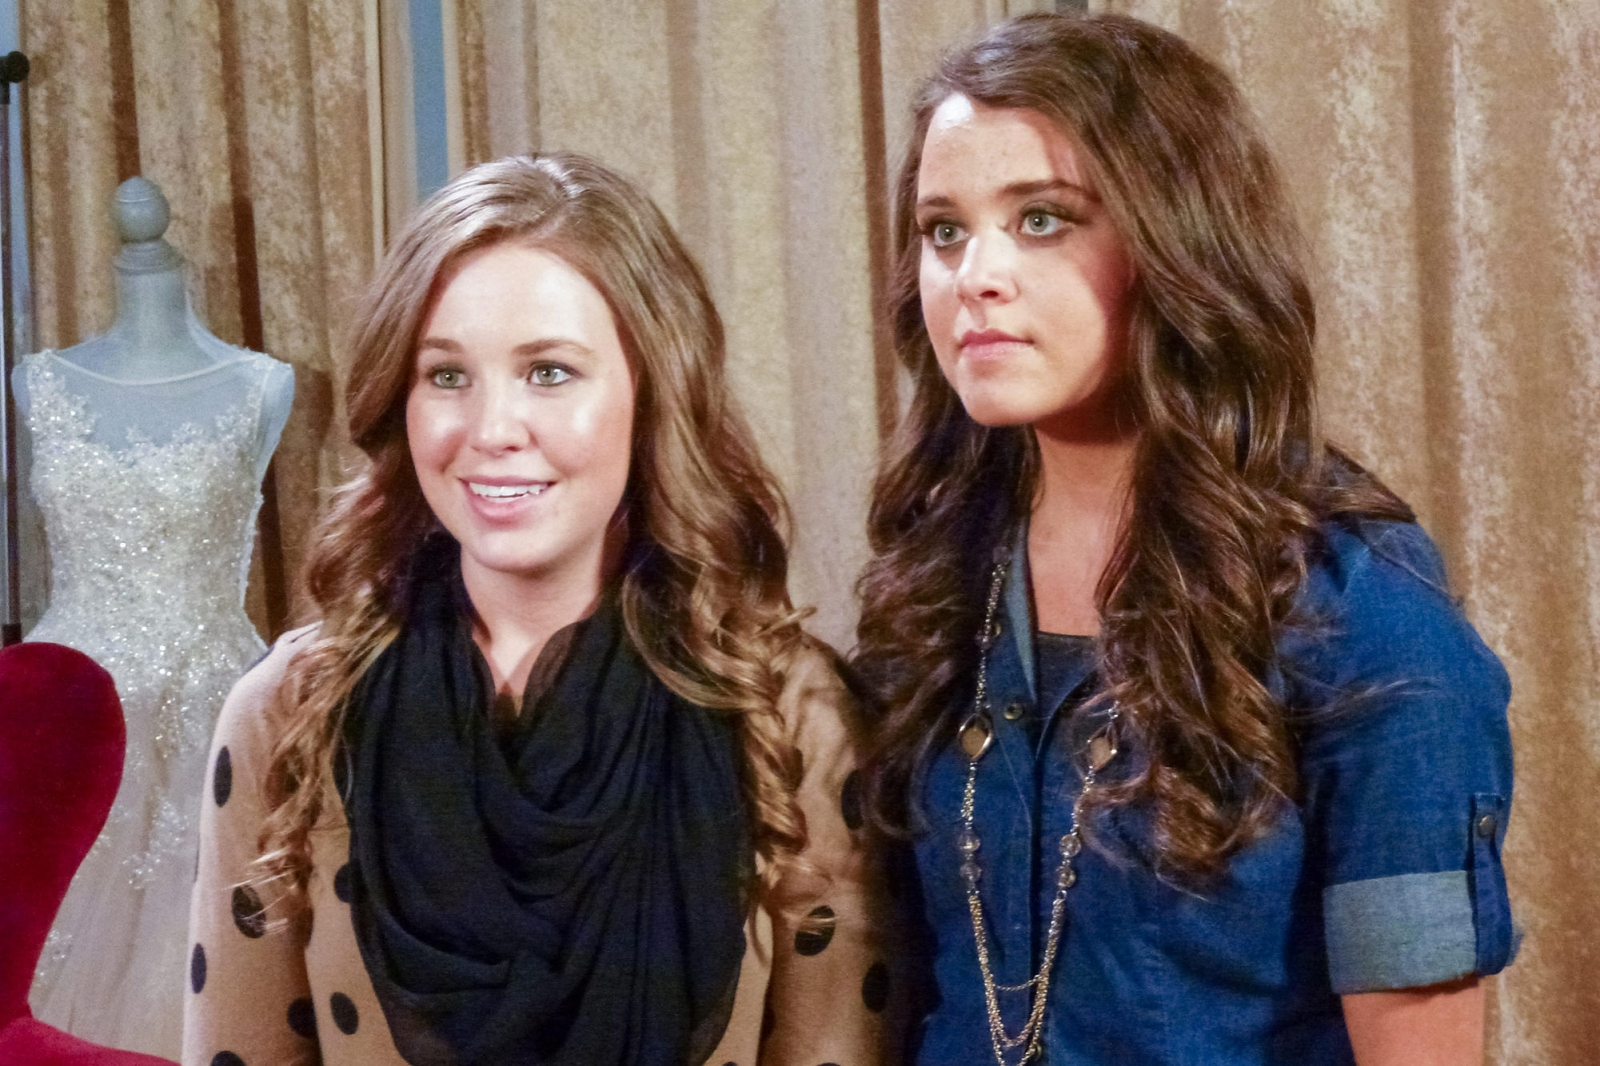 Jana Duggar dating? 19 Kids and Counting star reportedly hanging out with Lawson Bates